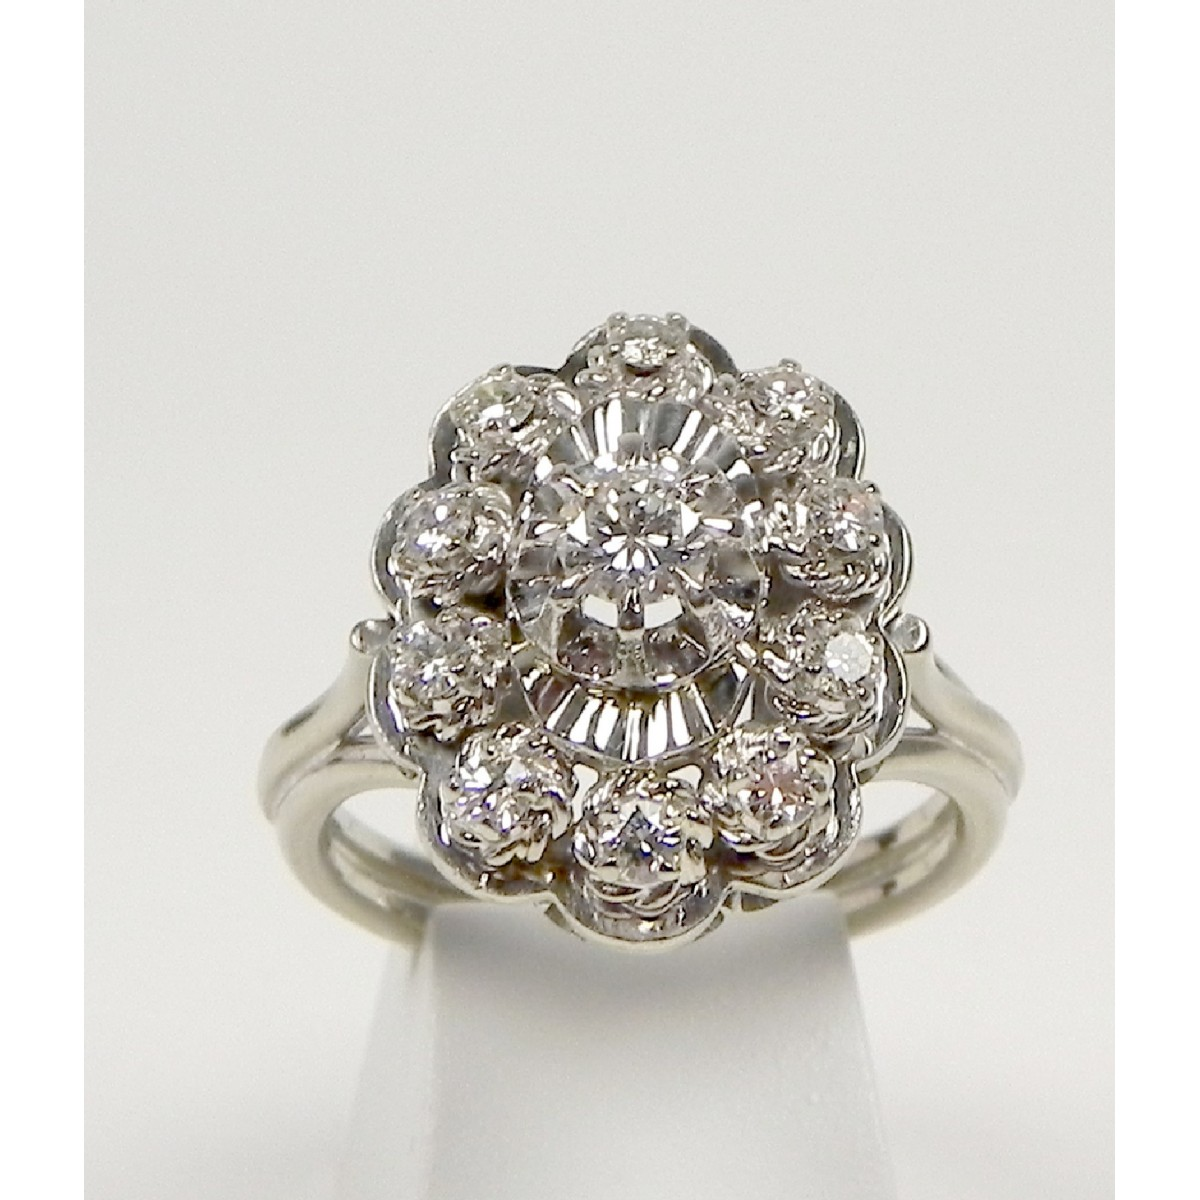 Favori Bague marguerite platine diamants or - Muse & Or EK23